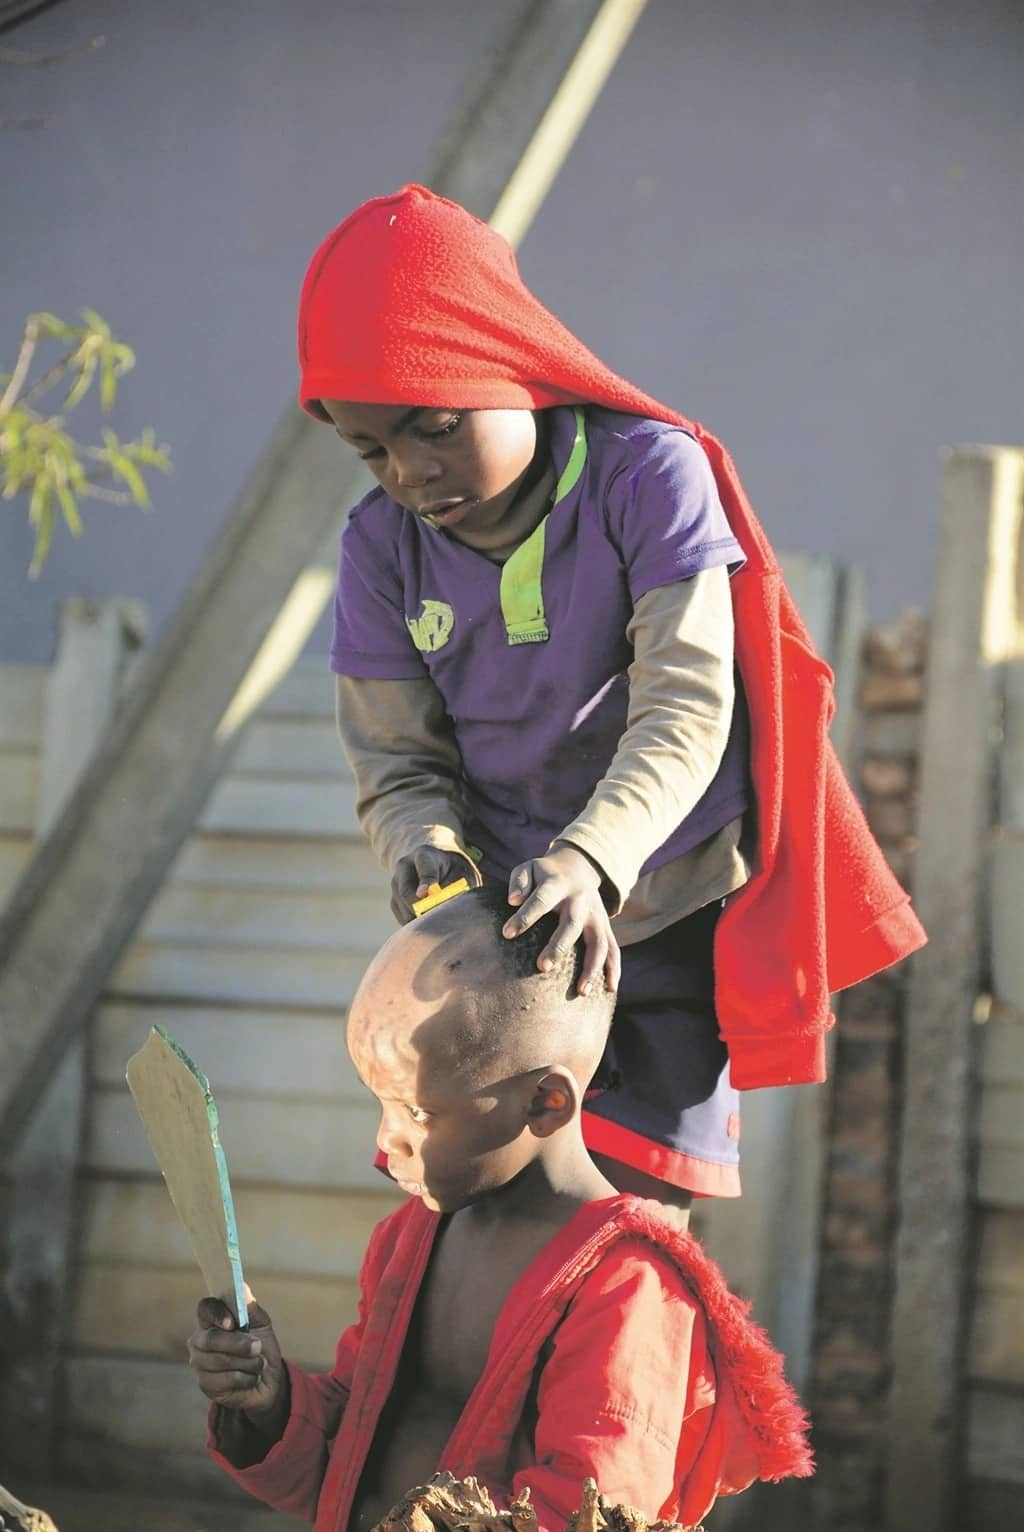 Meet Abel Mbatha, the 7-year-old kasi barber who is making a name for himself